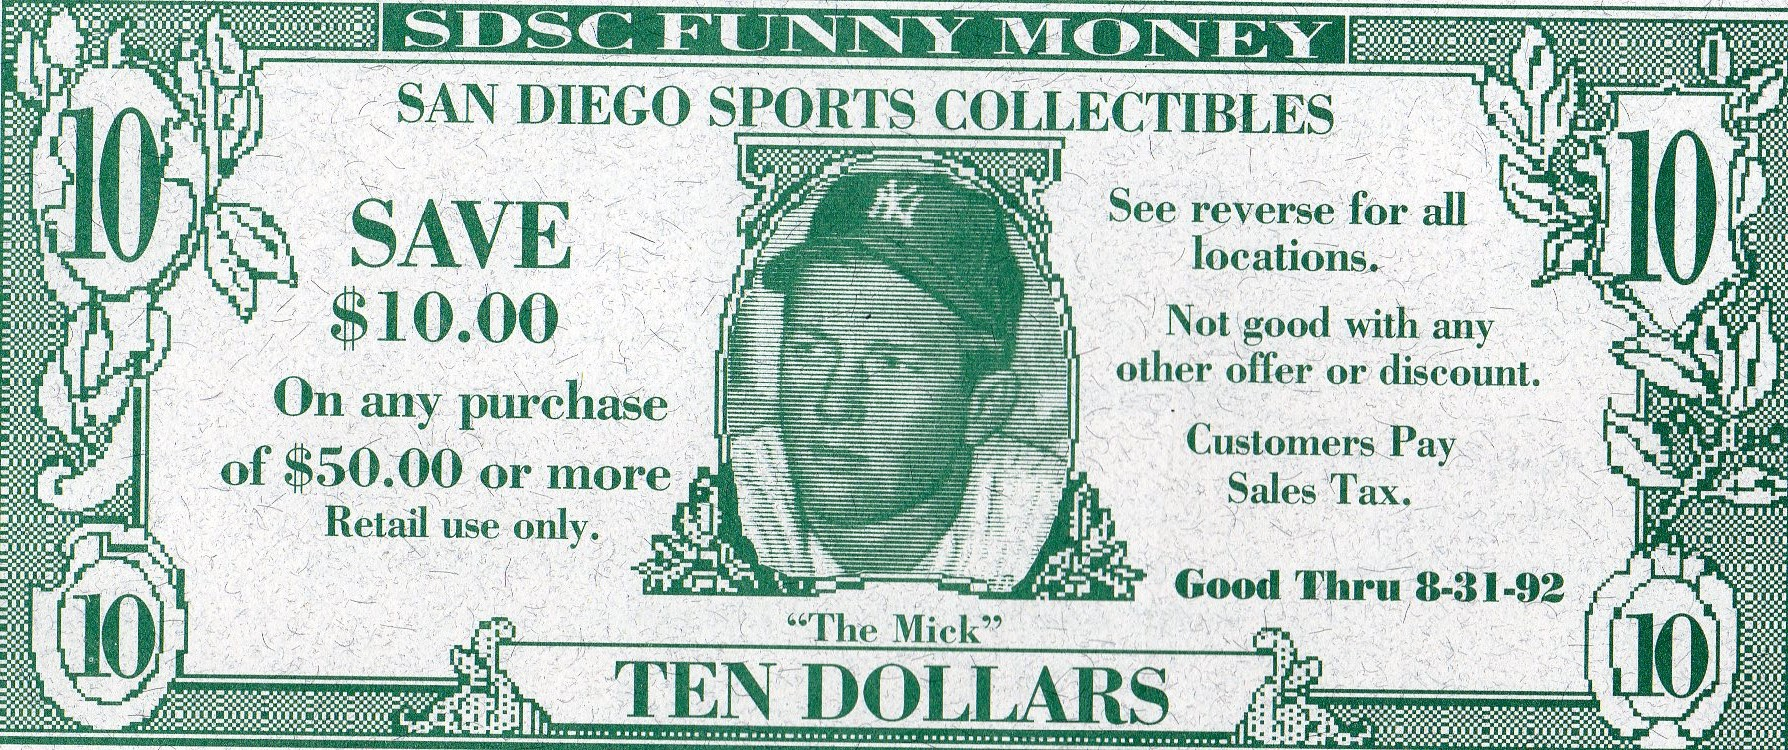 1992 sdsc funny money